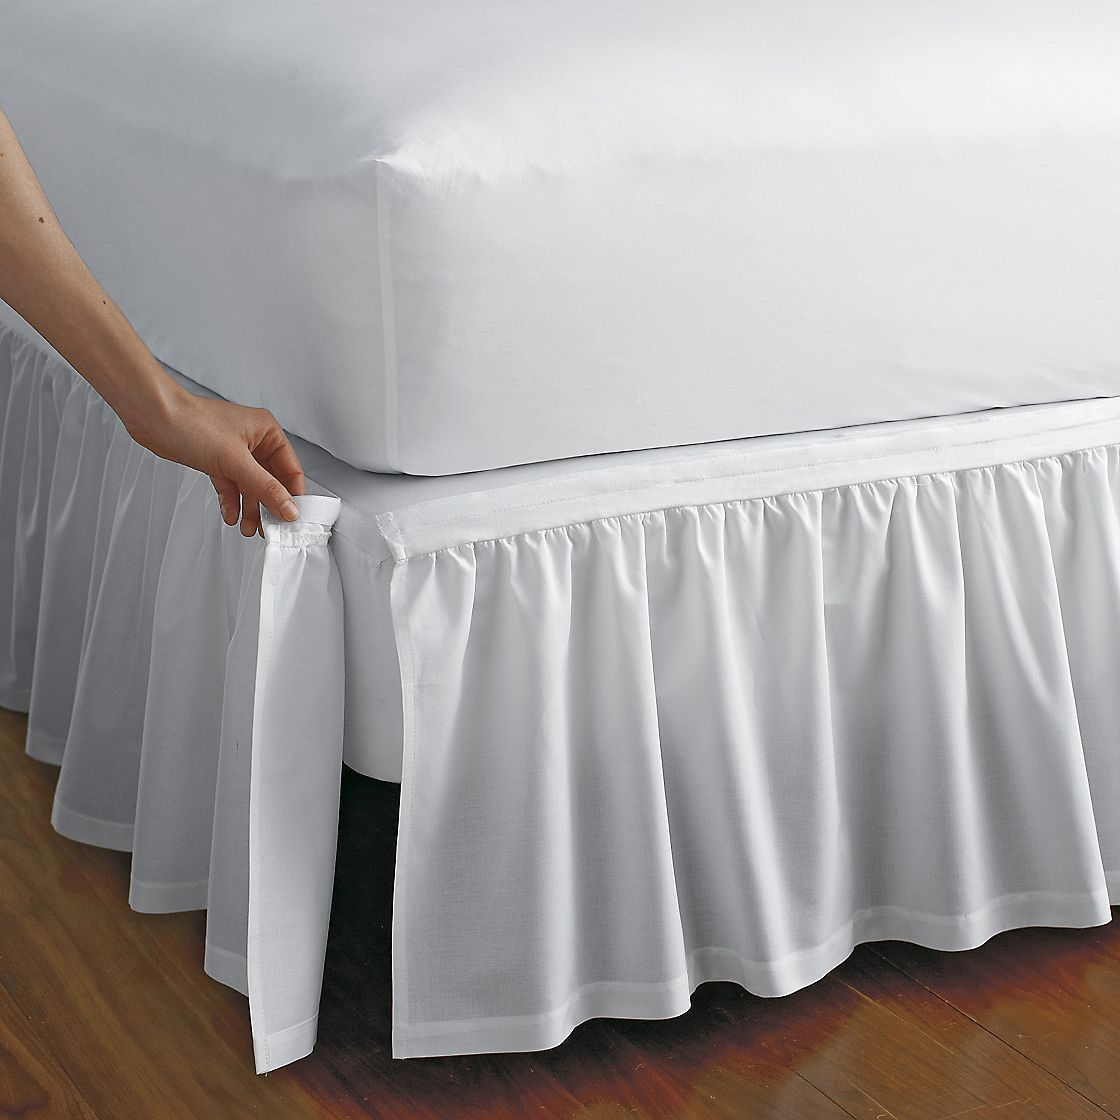 Detachable Gathered Bedskirt What A Great Idea